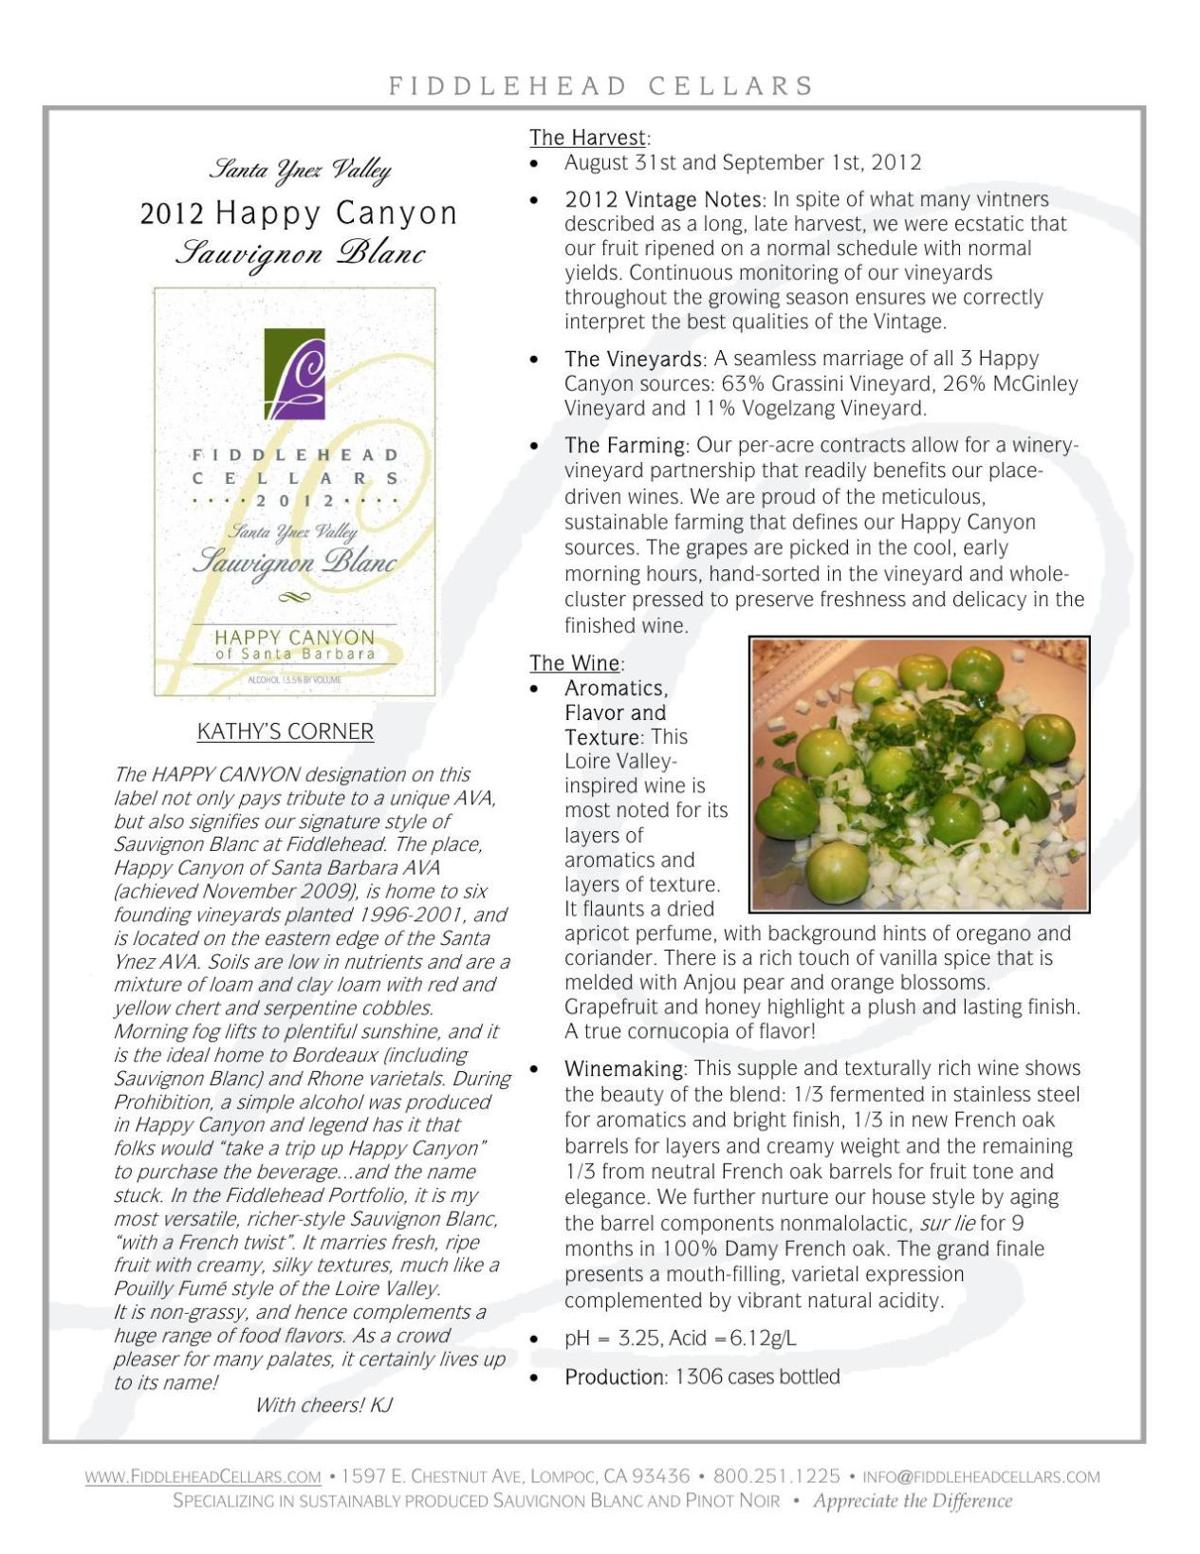 Fiddlehead 2013 Happy Canyon Sauvignon Blanc